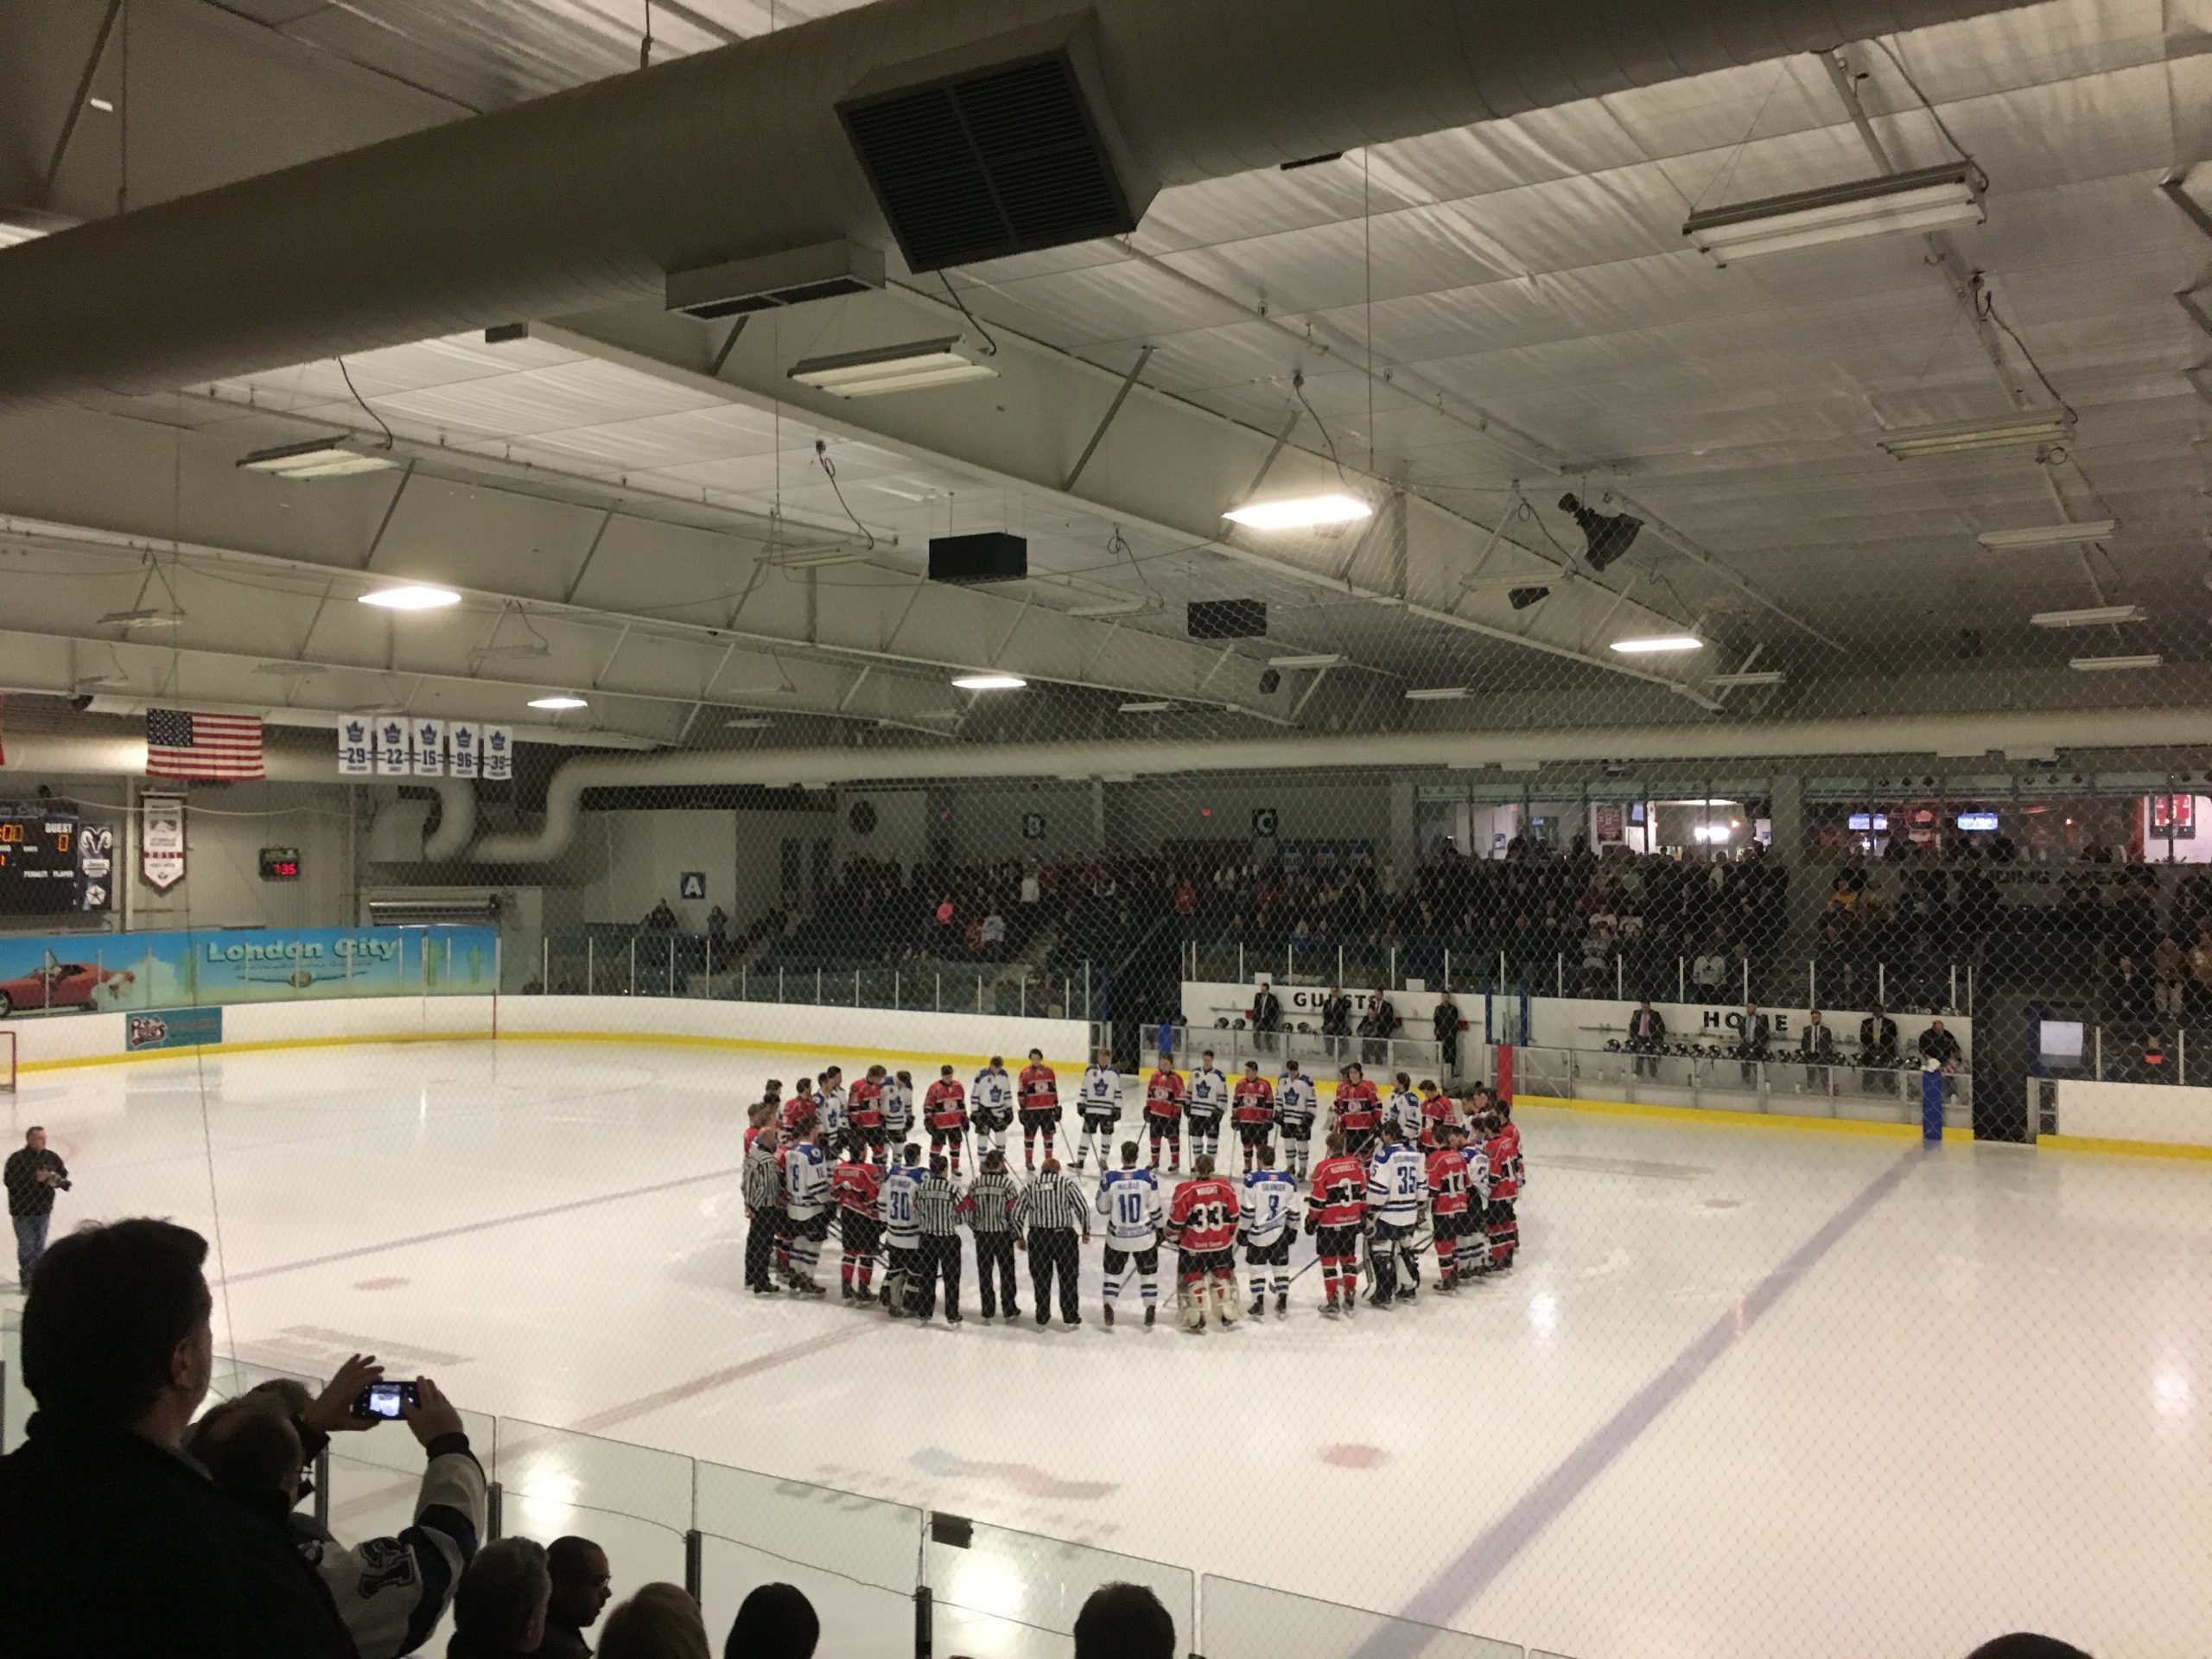 More than a game: how Humboldt affects a larger community